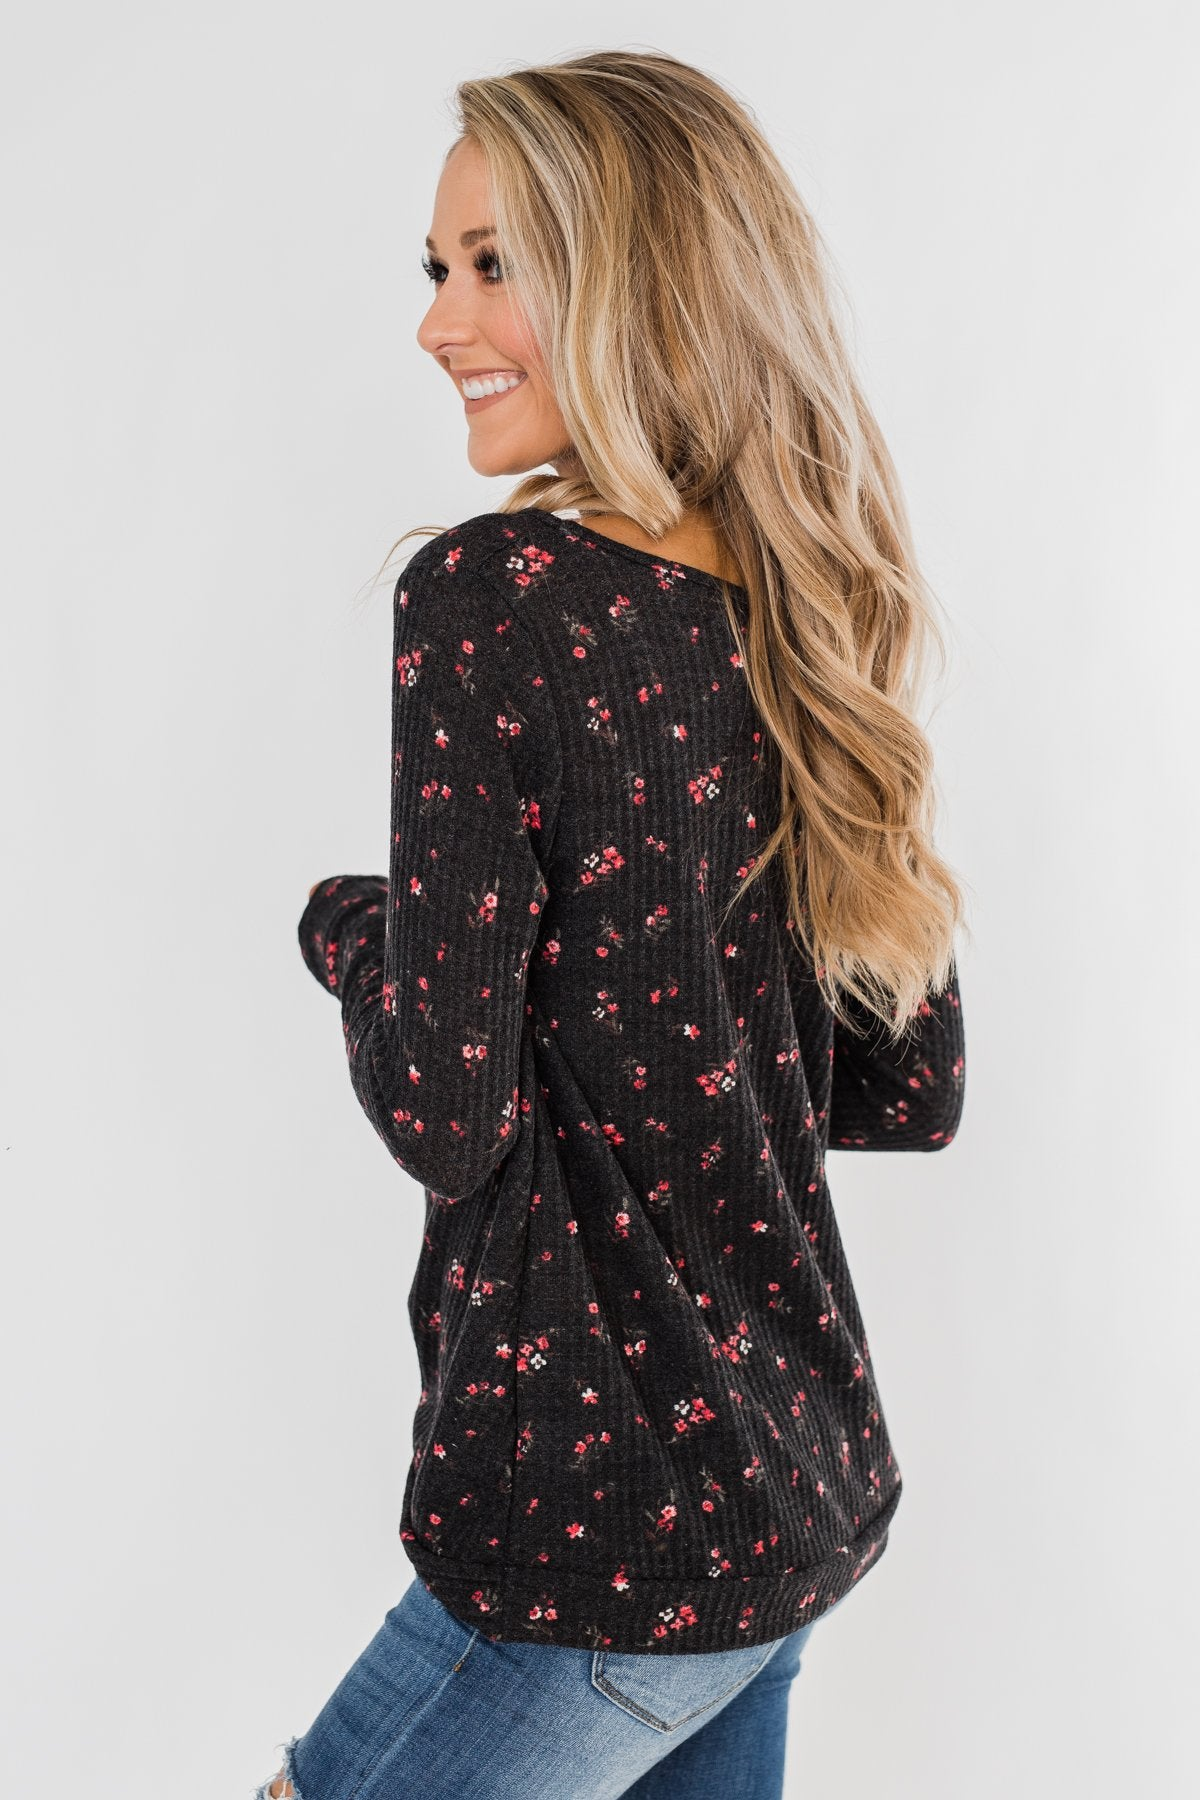 Above The Rest Floral Twist Top- Black